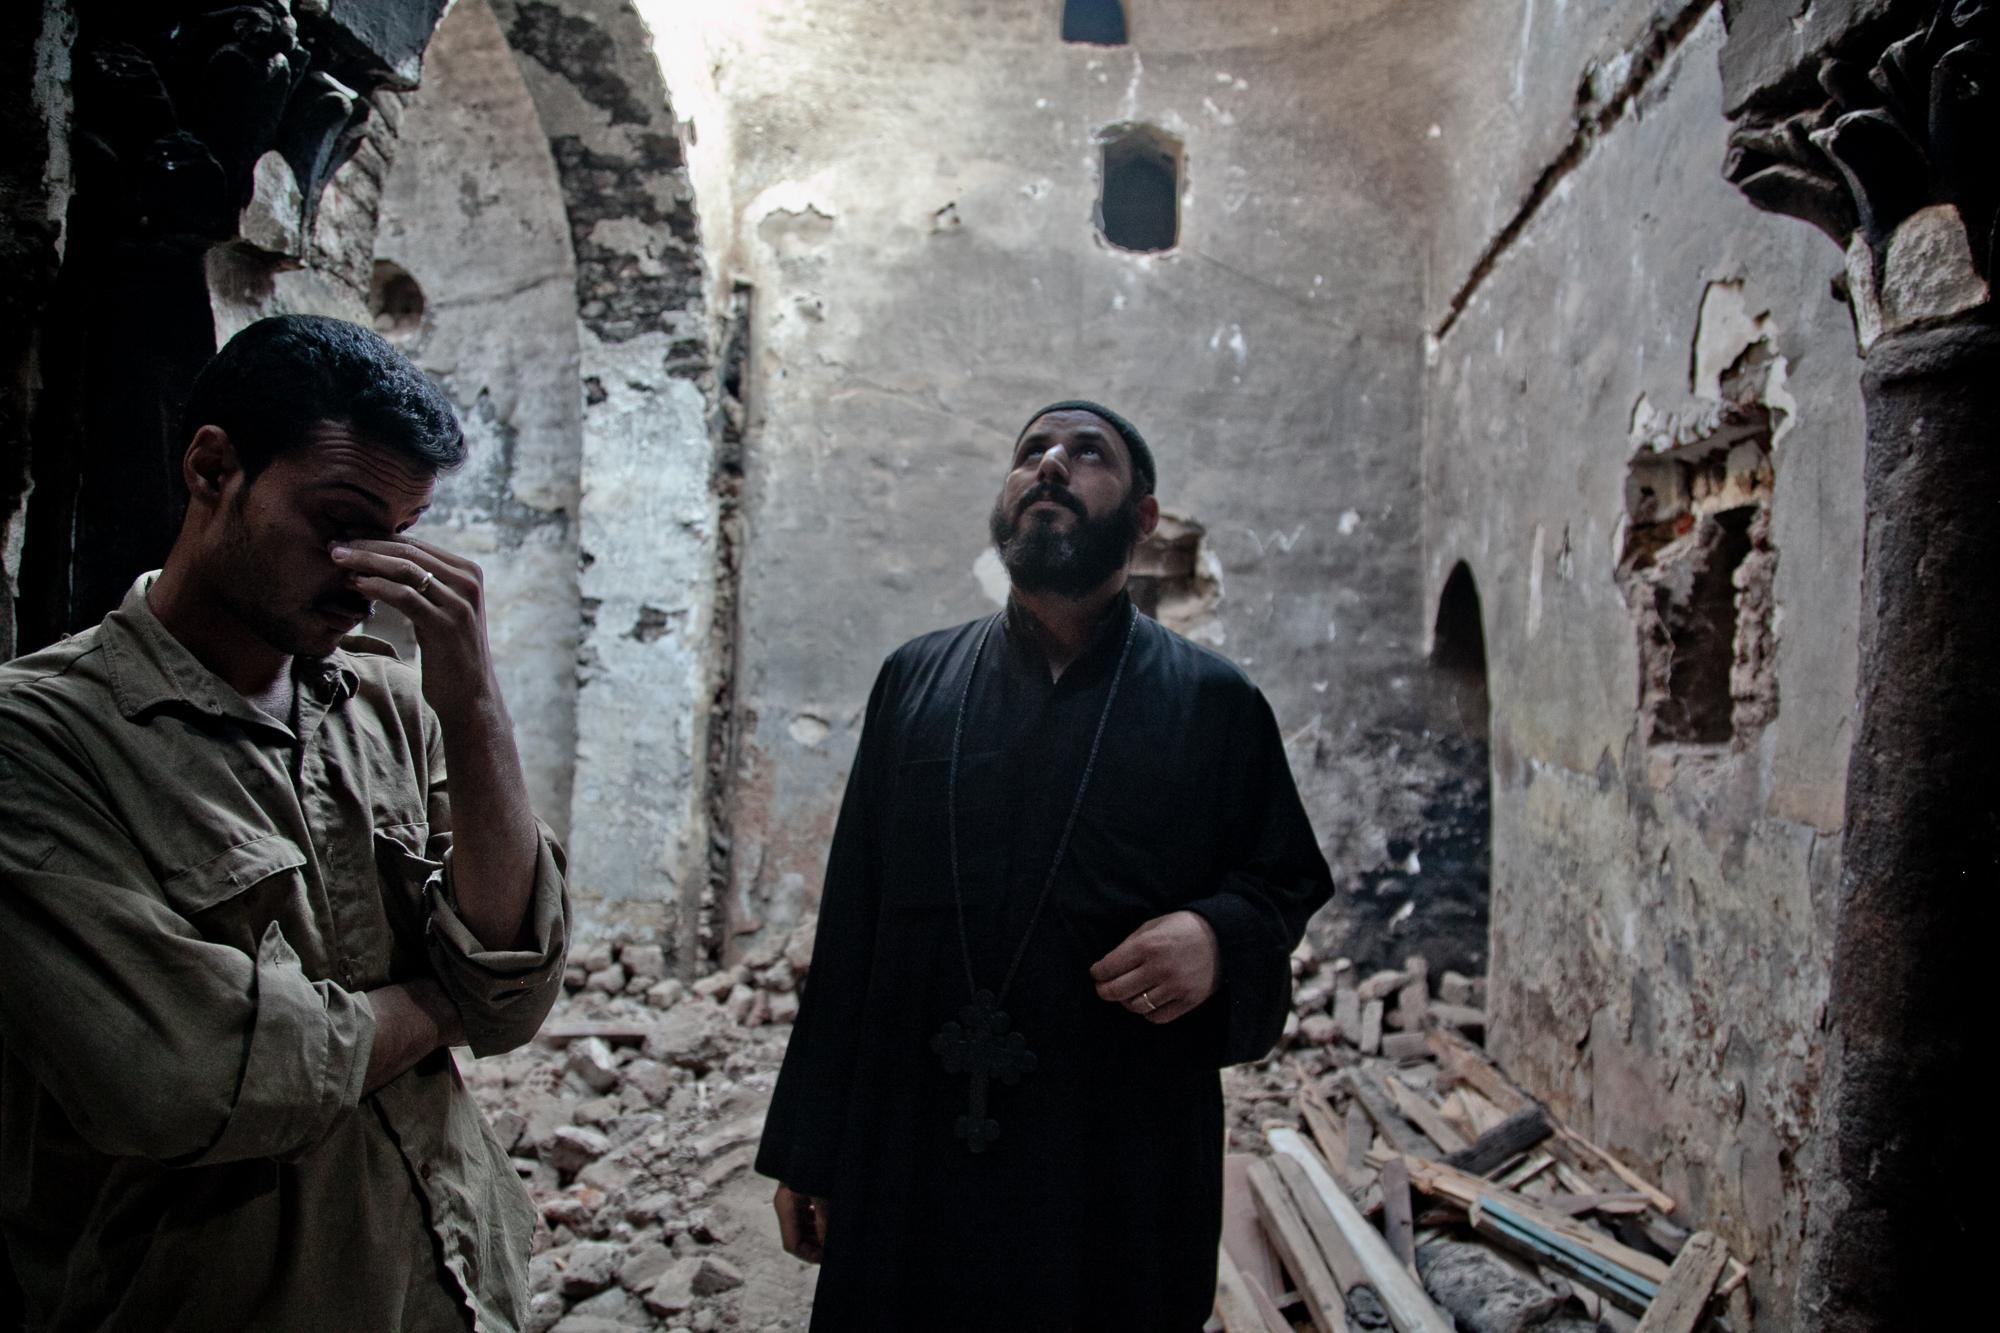 Pope Johannes stands in the middle of rubble in the underground Virgin Mary Church in Delga (which is over 1000 years old) the church was looted of ancient icons and the monastery burned for three days by groups of pro-Morsi supporters. The Muslim Brotherhood ran out the police in Delga so there is no police presence.